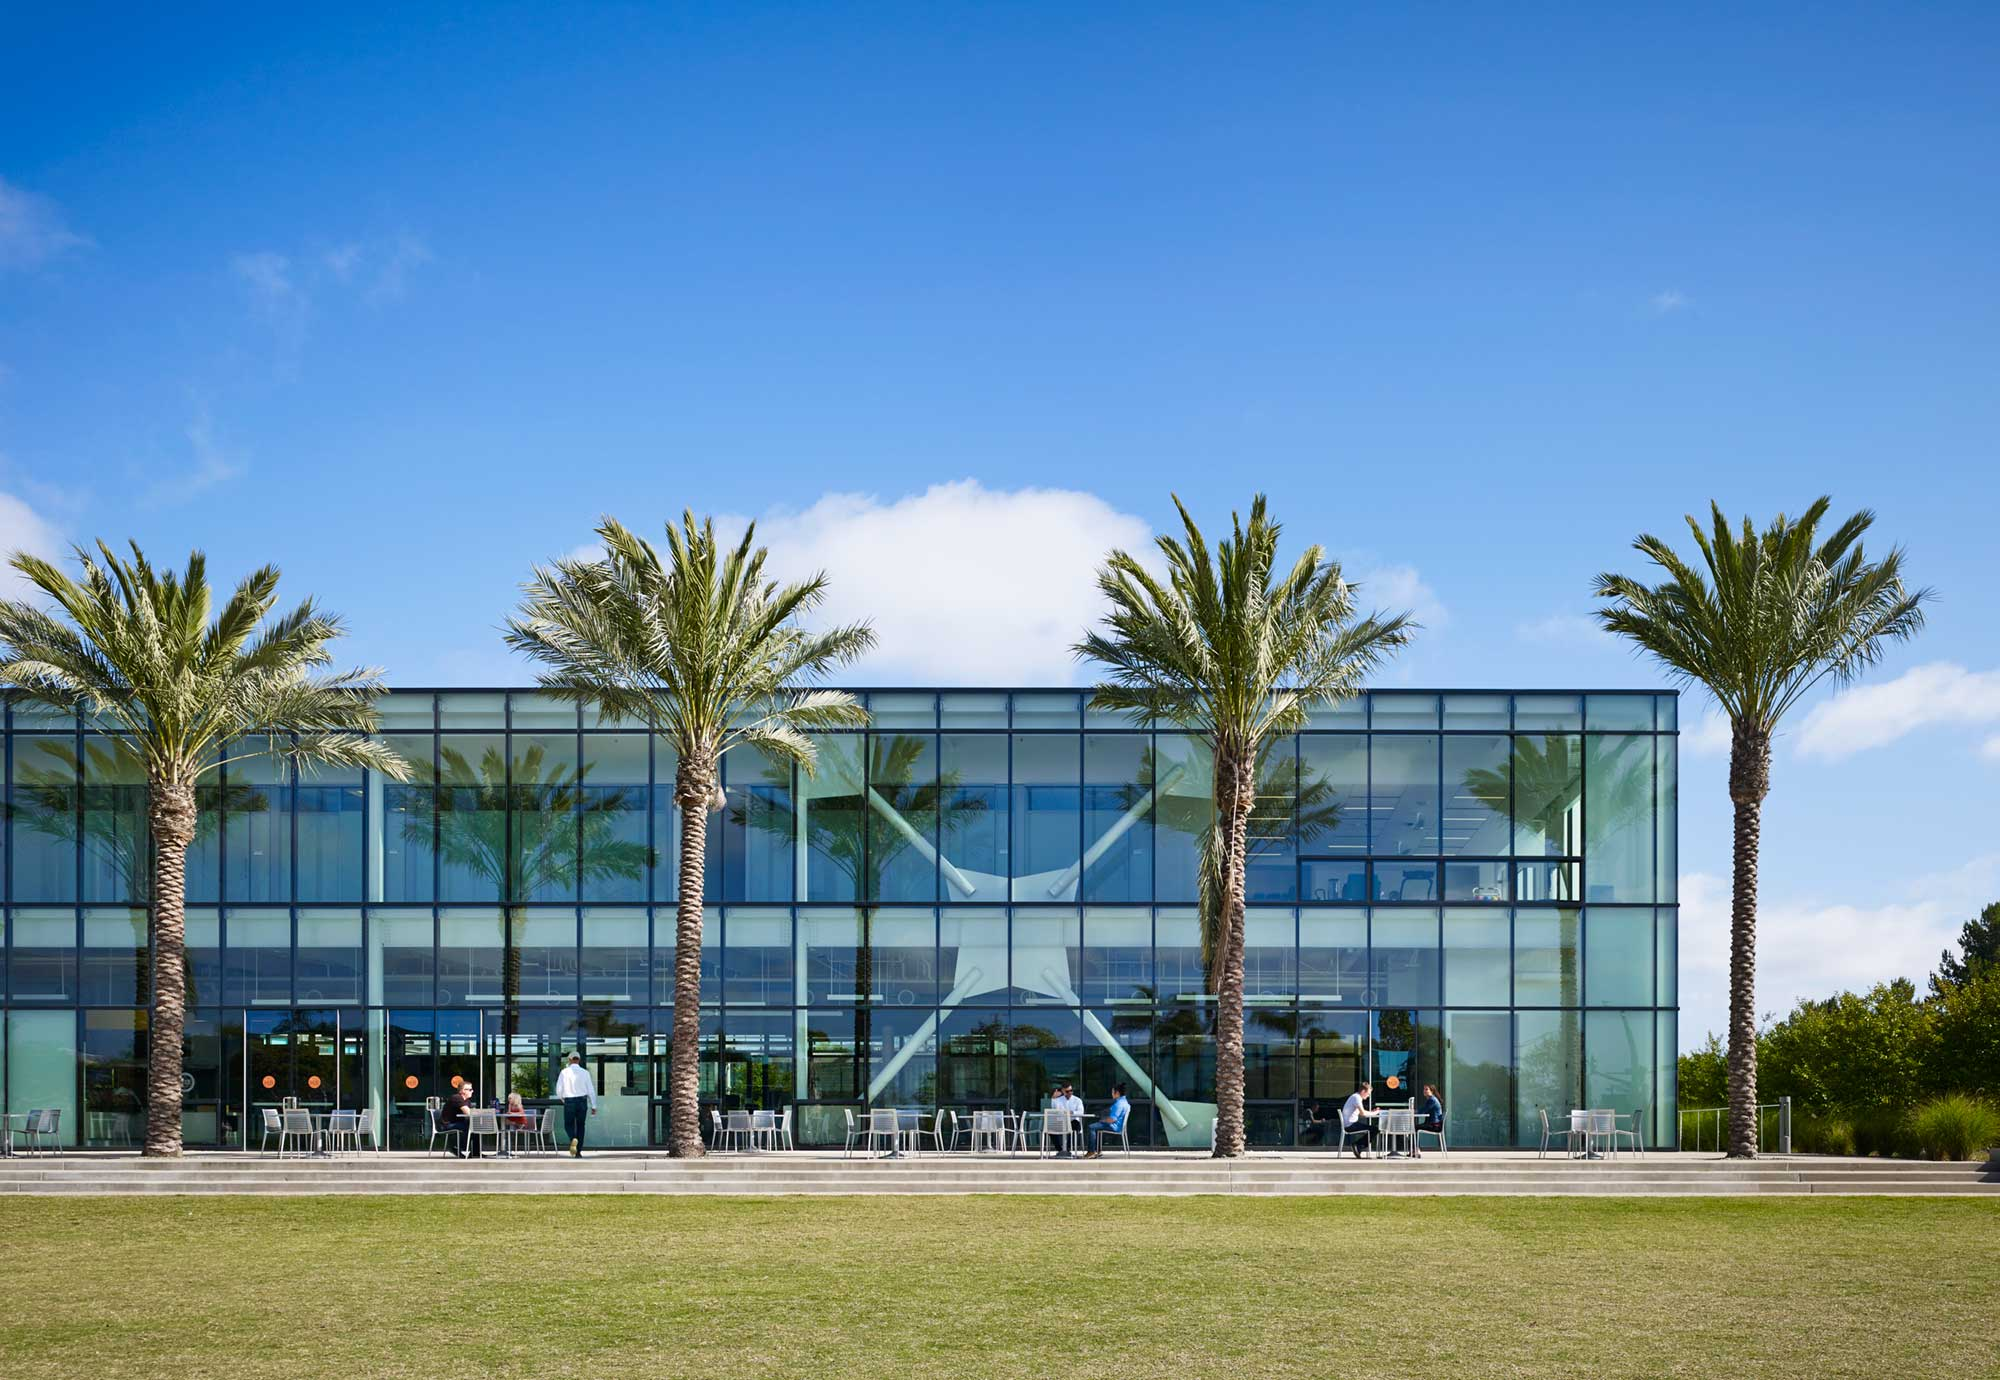 Pacific Center Campus recognized with Architizer A+Award Special Mention